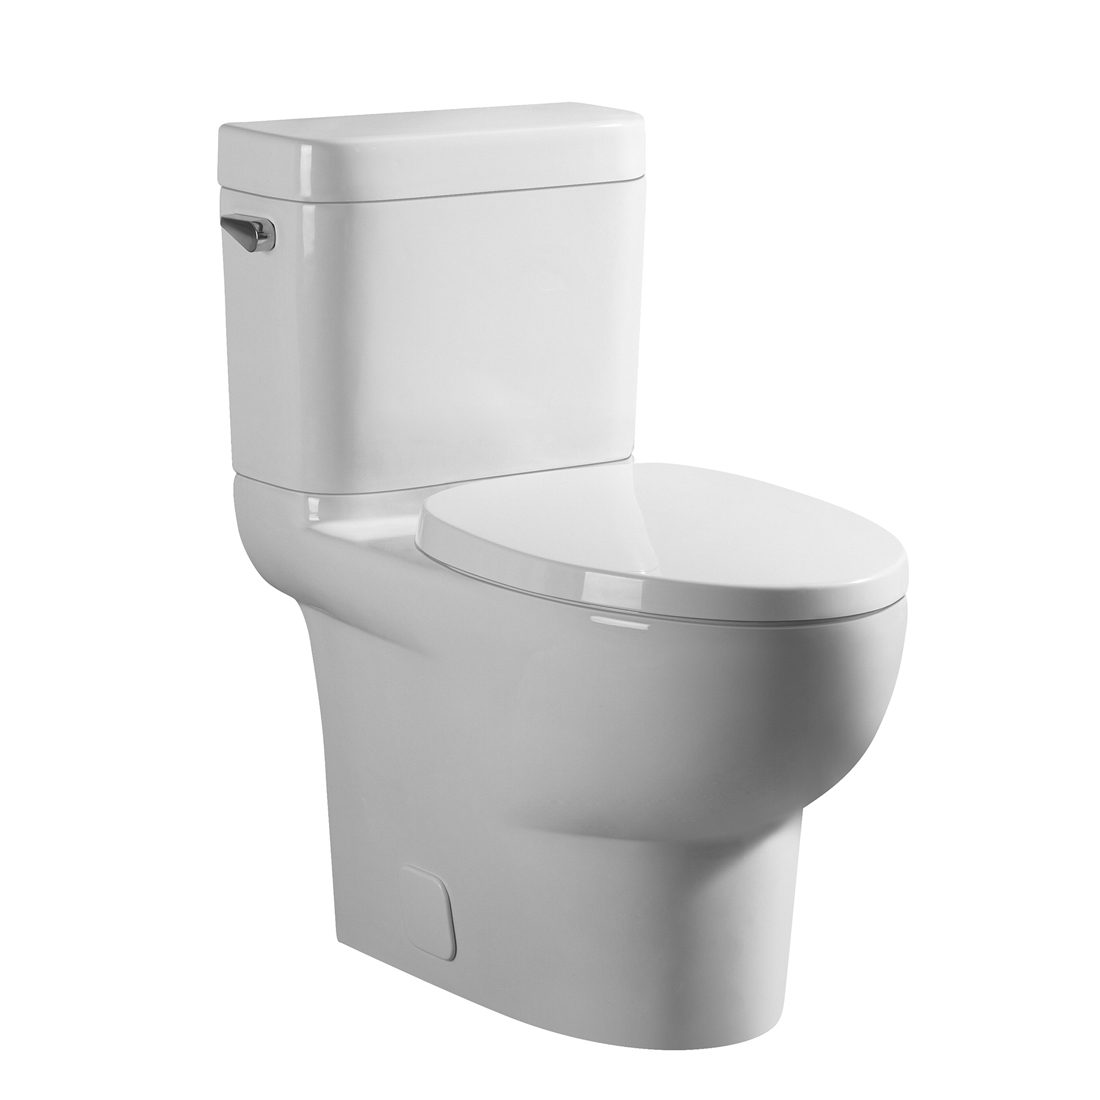 Brandon Toilet 16.5inch 4.8L White Front View